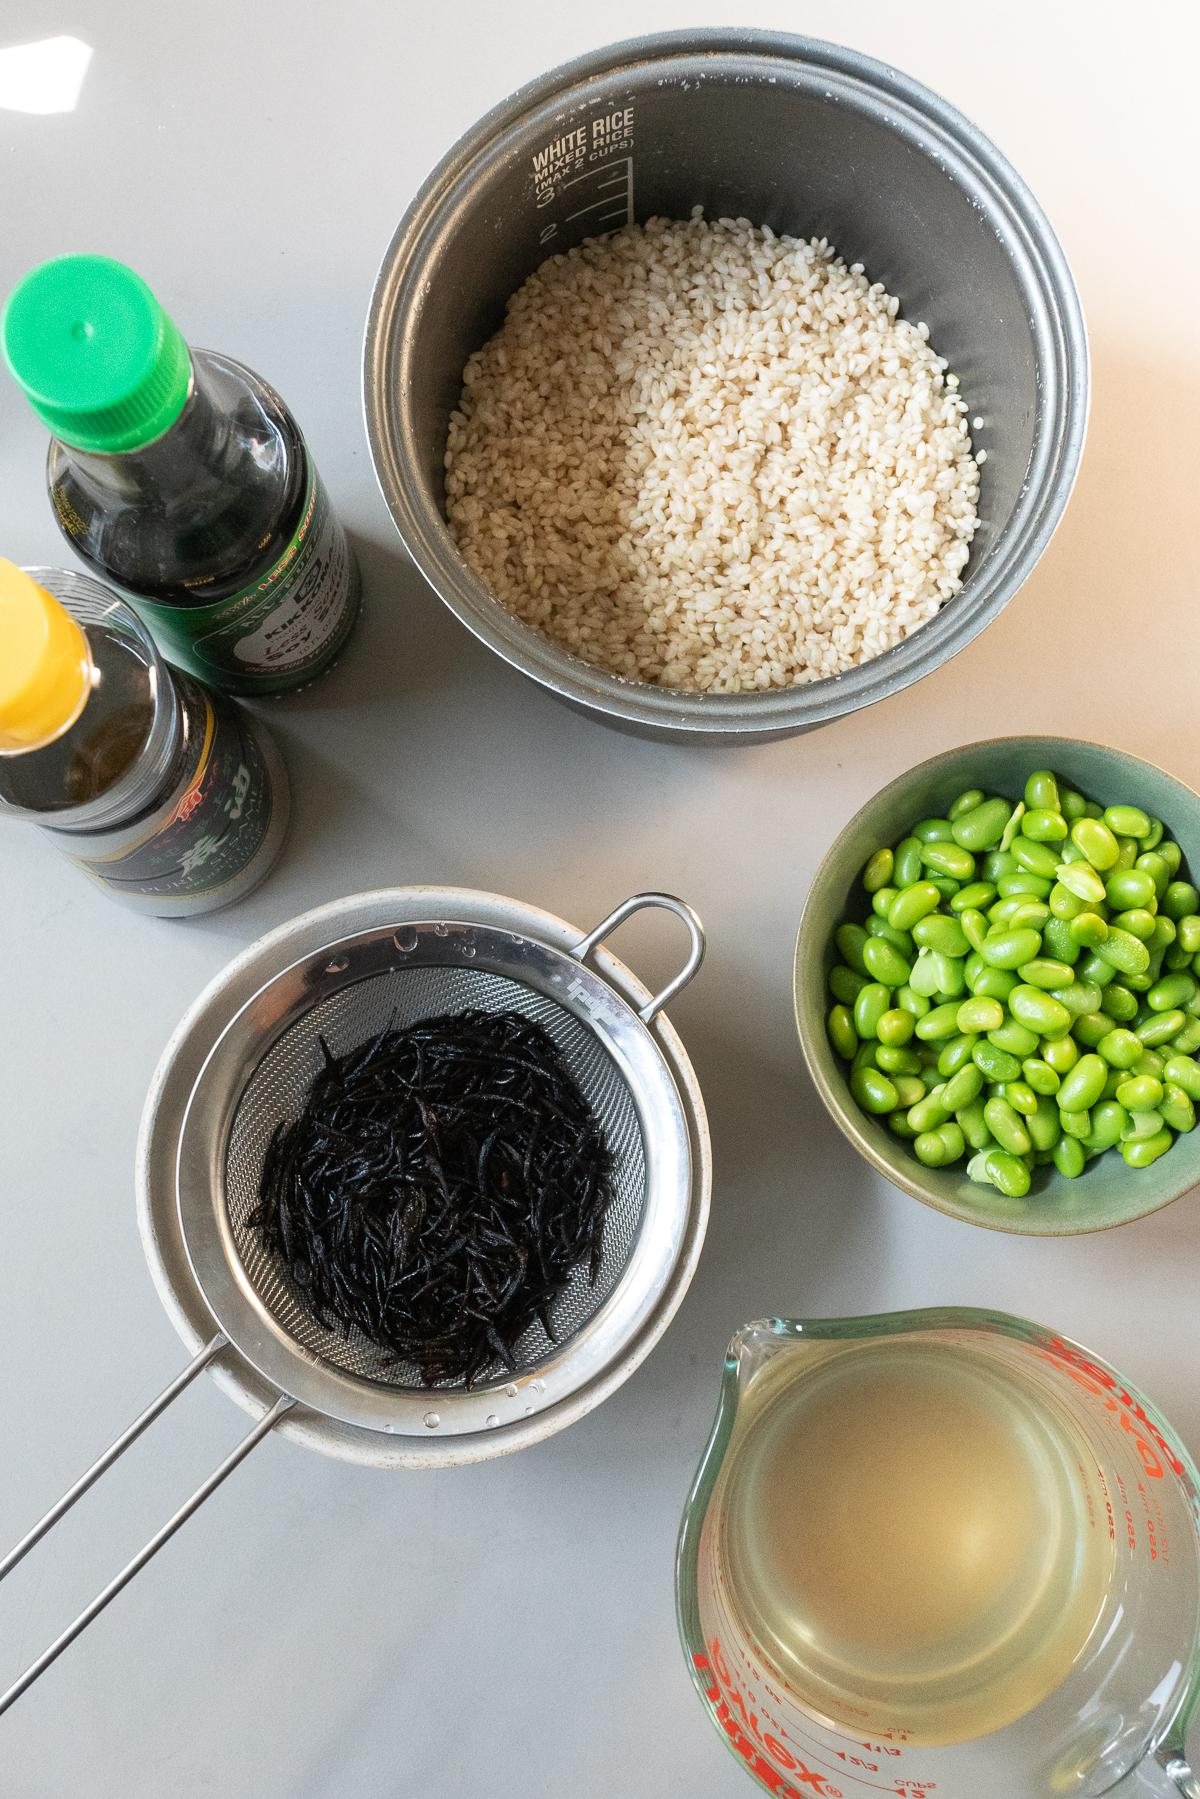 Ingredients for Edamame and Hijiki Rice (rice, hijiki, edamame, dashi, soy sauce, and sesame oil)